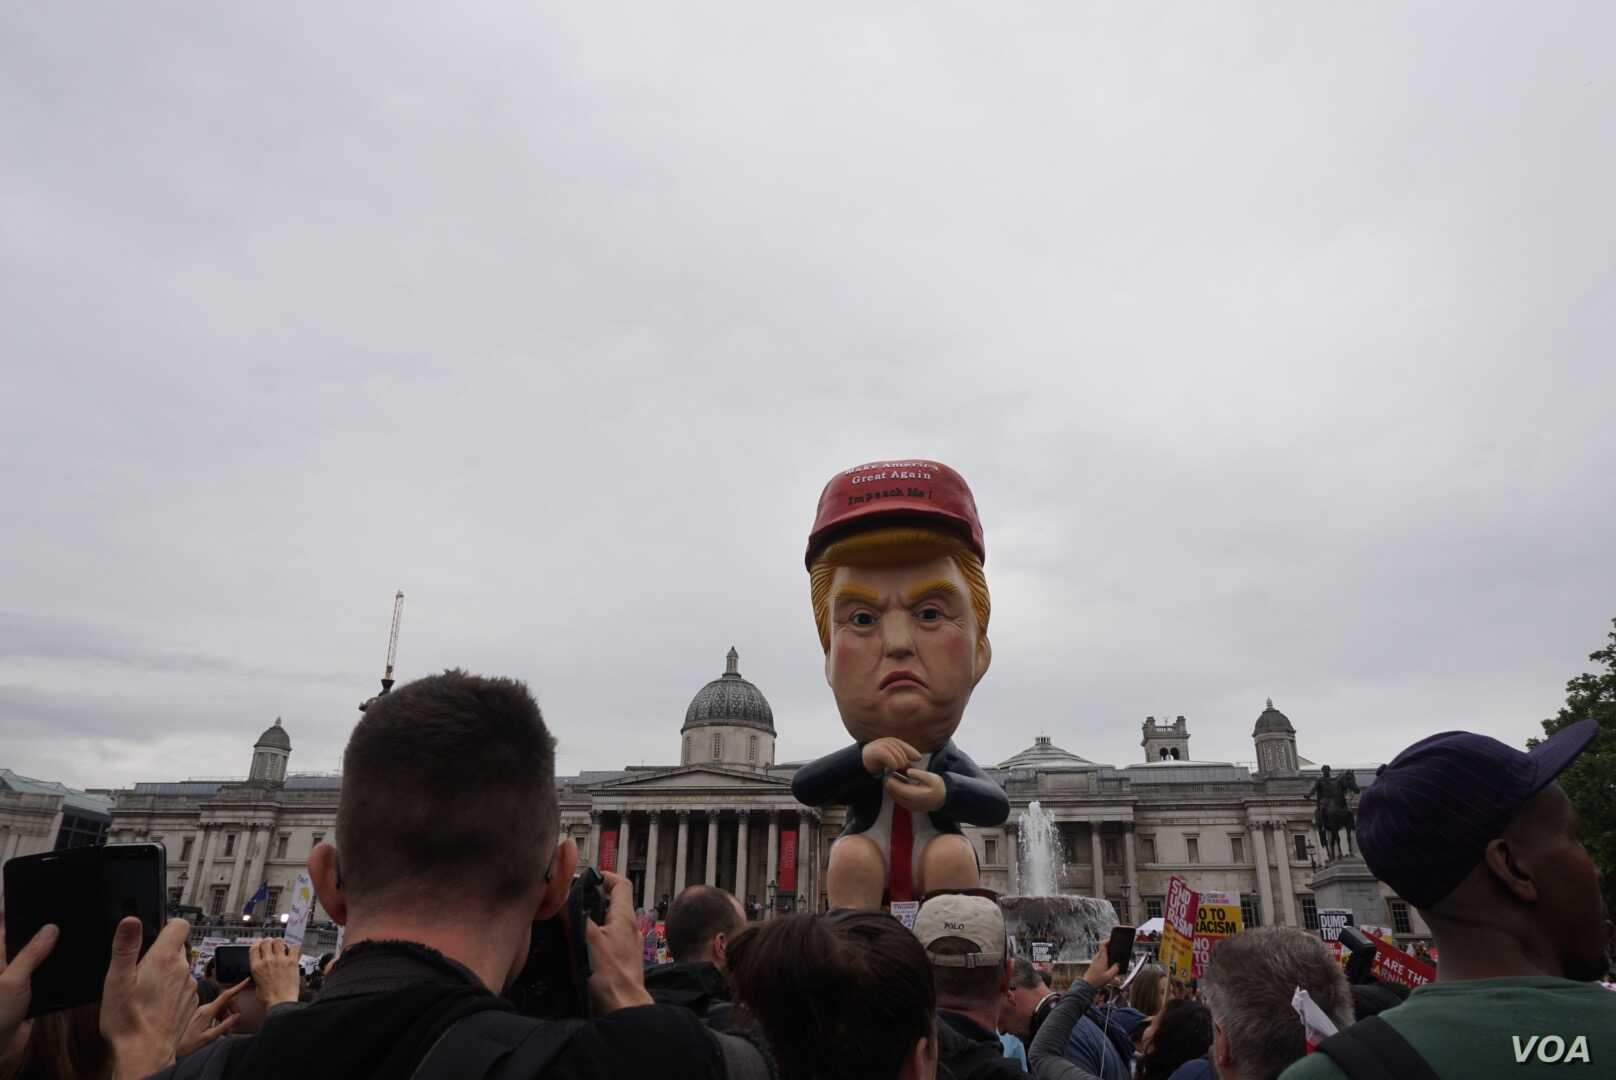 Protesters gather in London in front of an effigy of US President Donald Trump. (J. Dettmer for VOA)